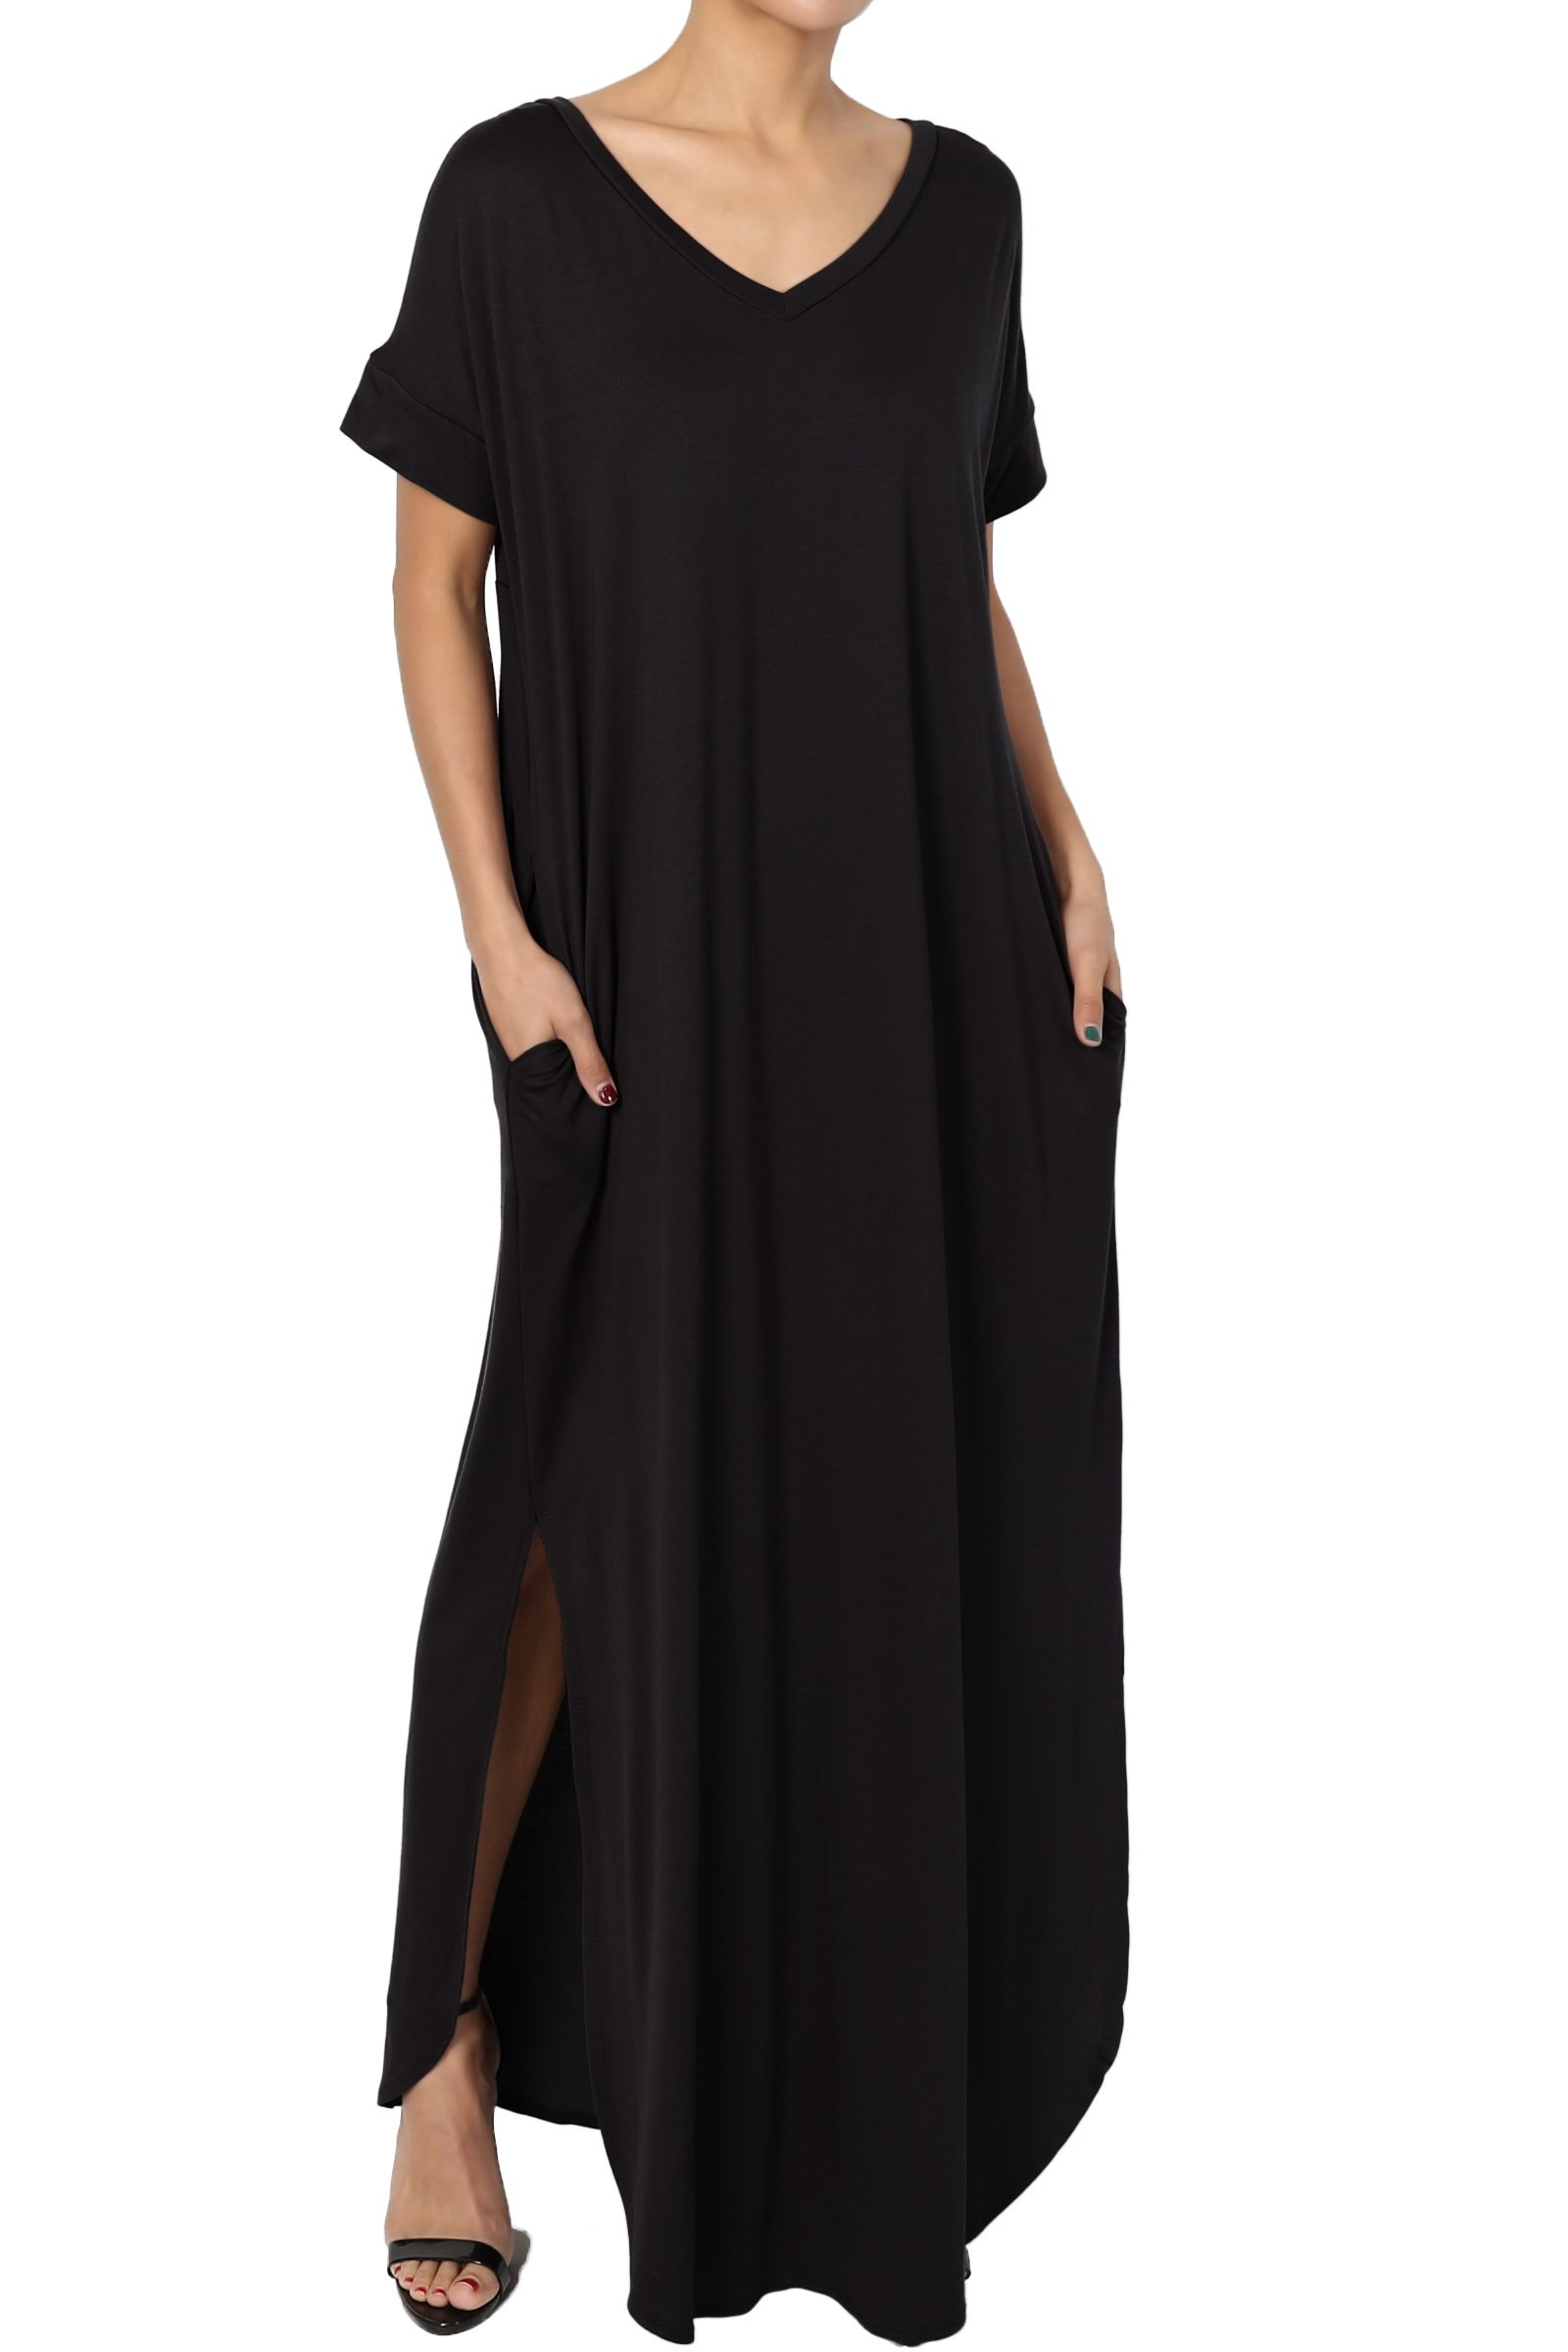 TheMogan Casual Short Sleeve Viscose Jersey Relaxed T-Shirt Slit Long Maxi Dress